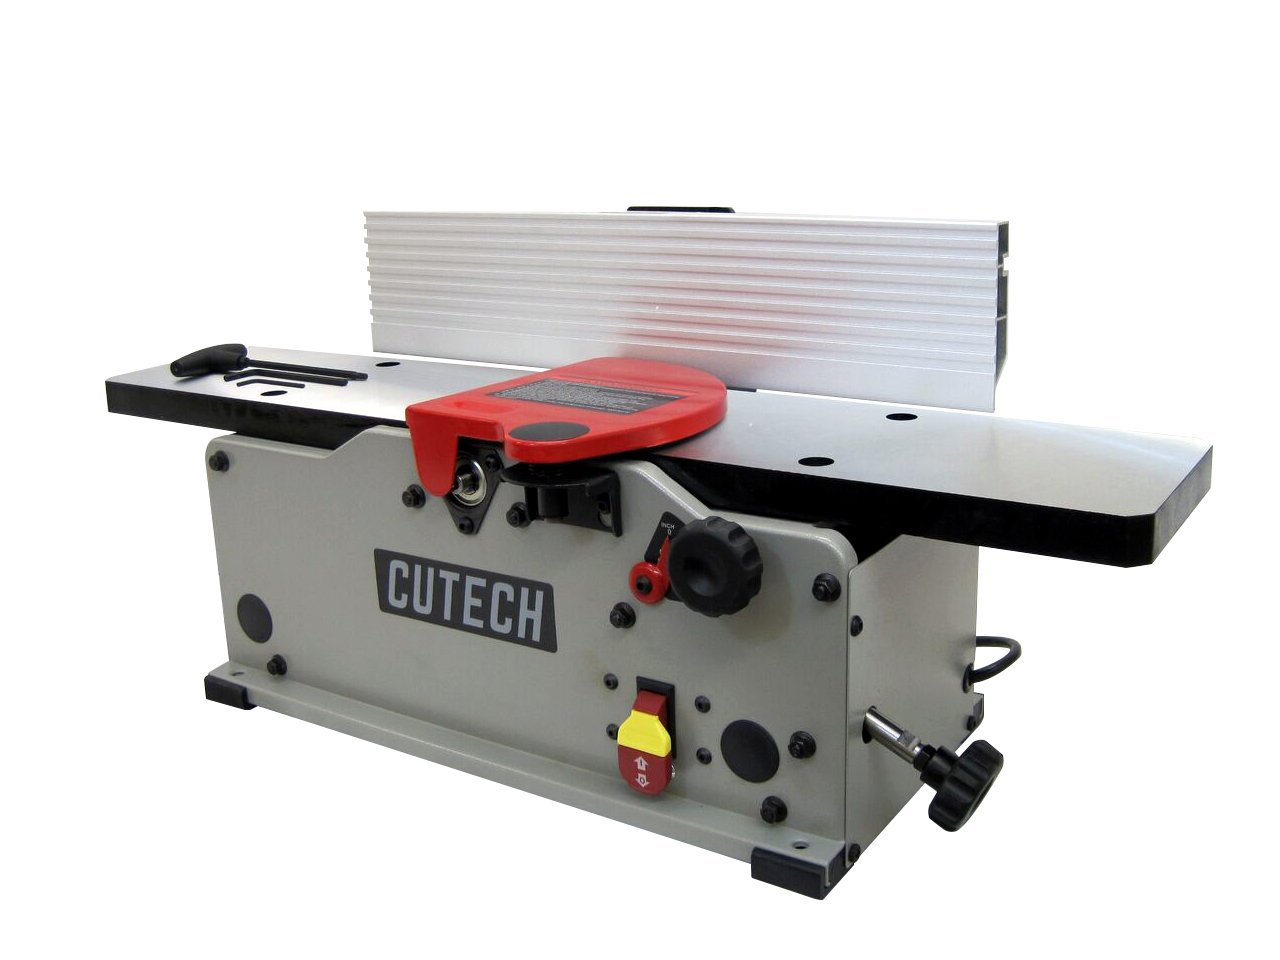 Cutech 40160H-CT Benchtop Spiral Cutterhead Jointer